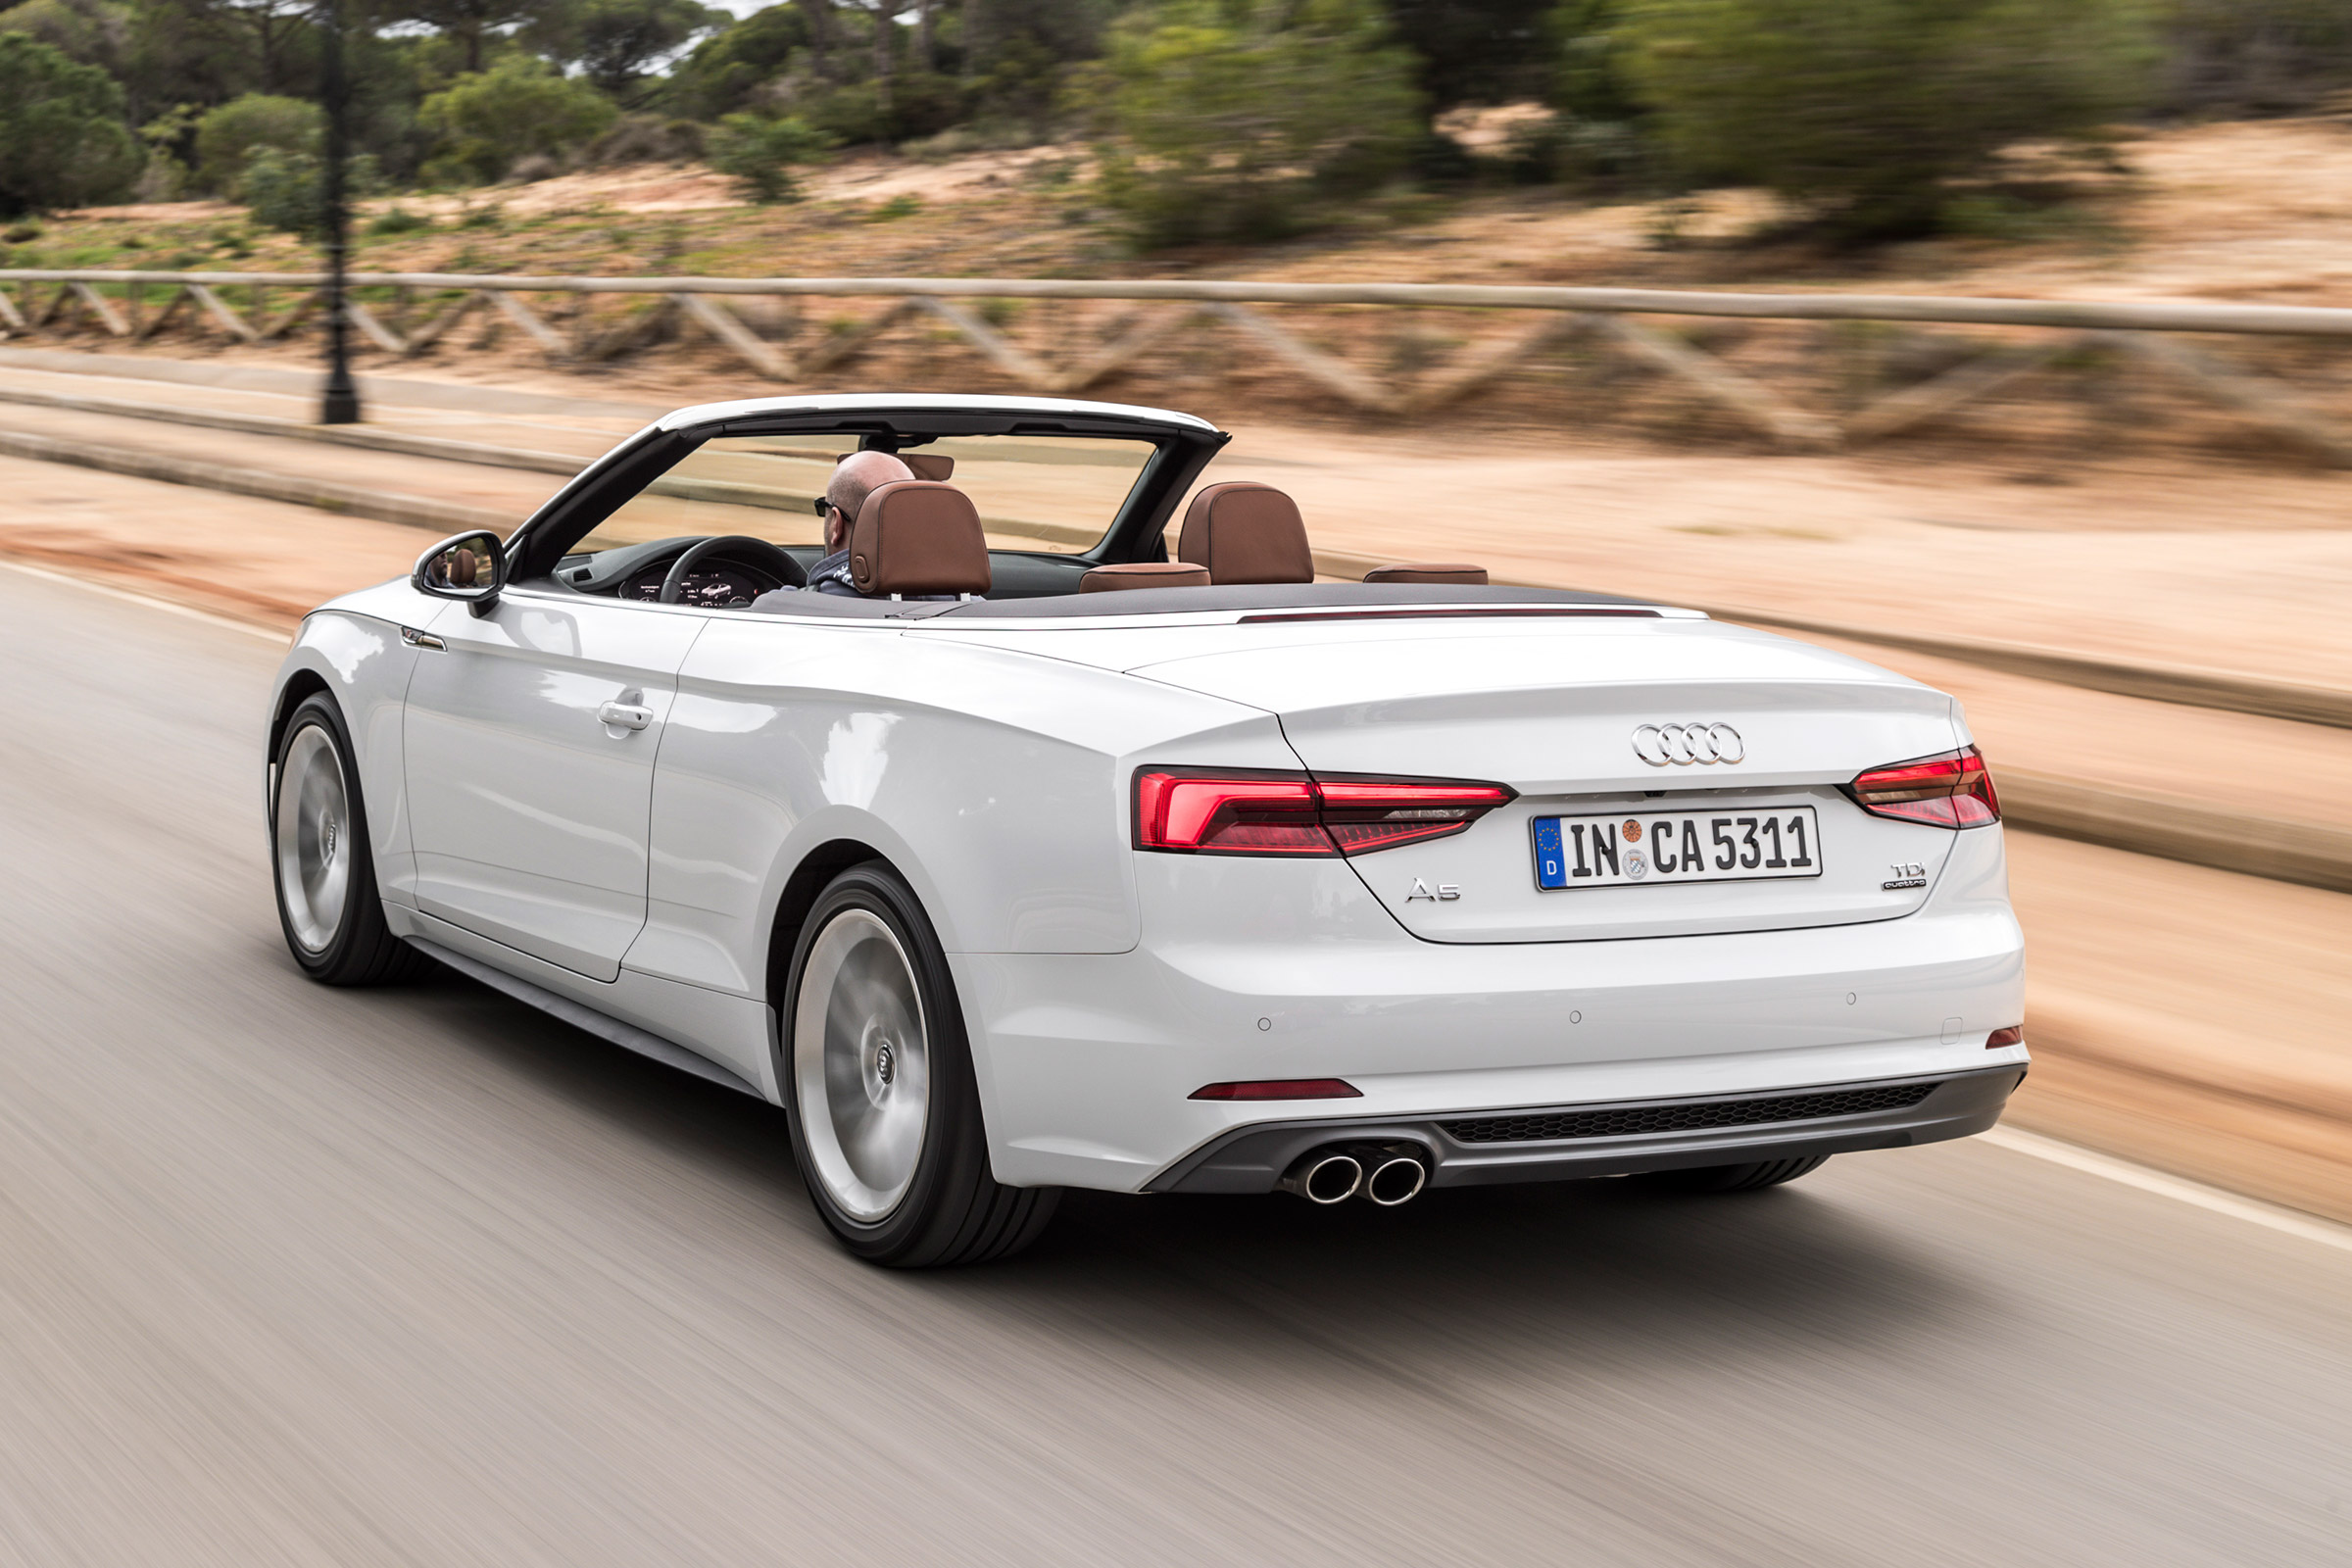 2017 Audi A5 Cabriolet Test Drive Rear And Side View (Photo 17 of 18)